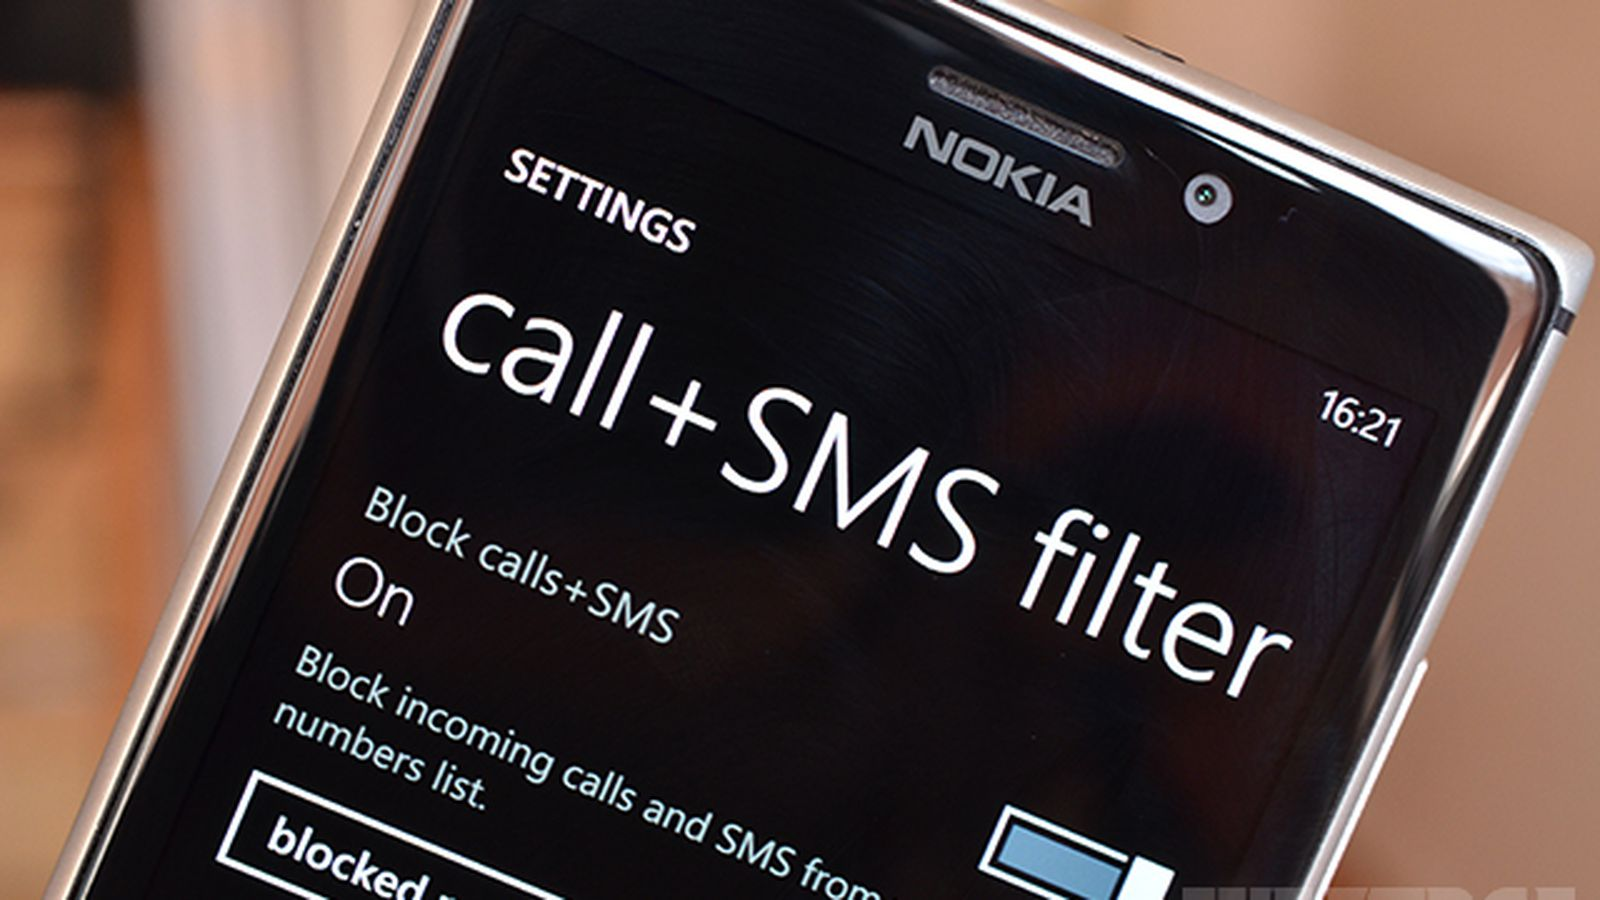 Windows Phone Gets Text And Call Blocking With Latest Nokia Update  The  Verge